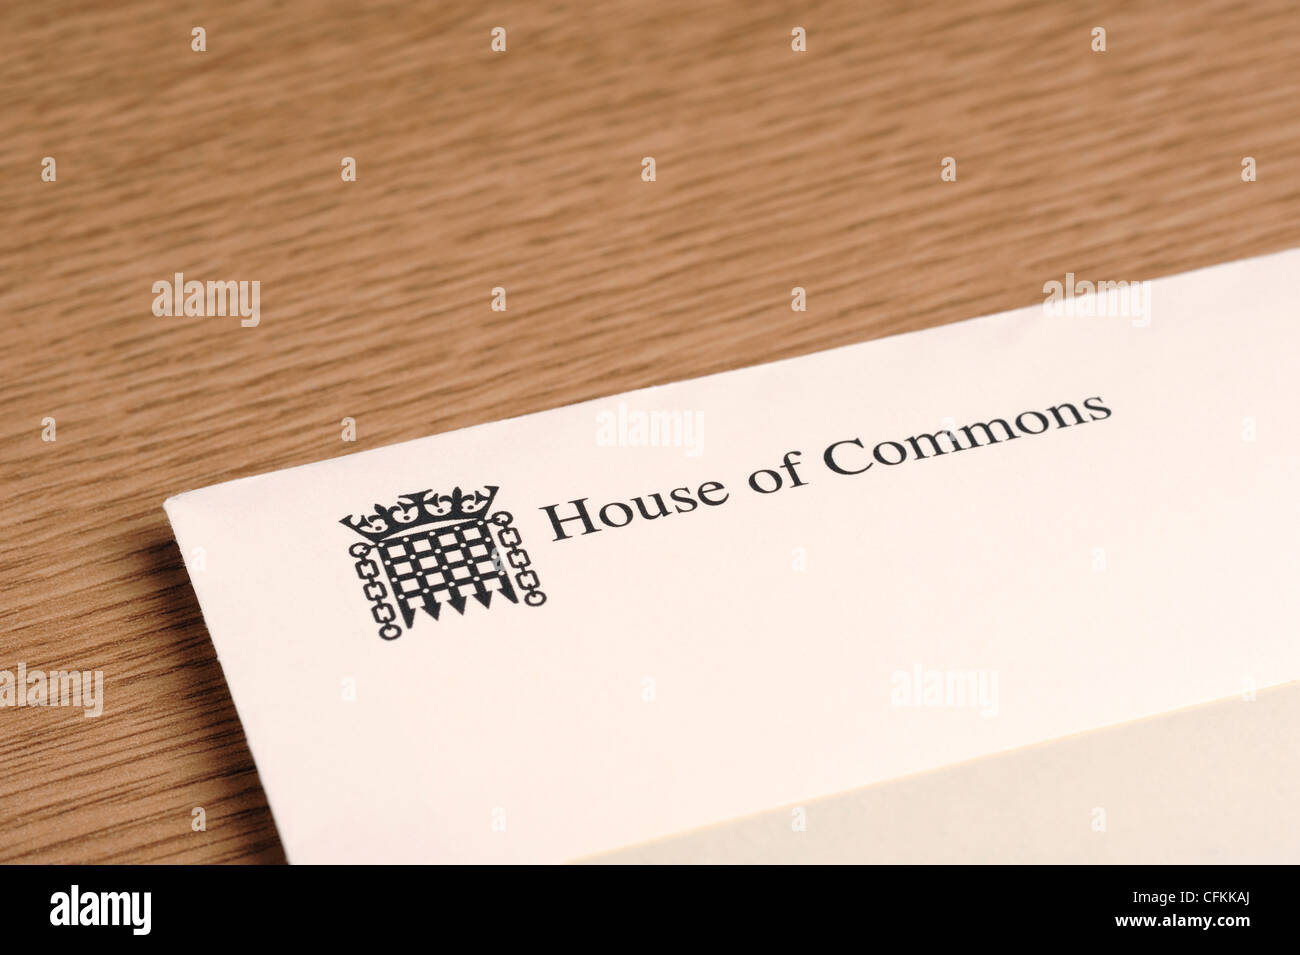 House of Commons letter envelope - Stock Image